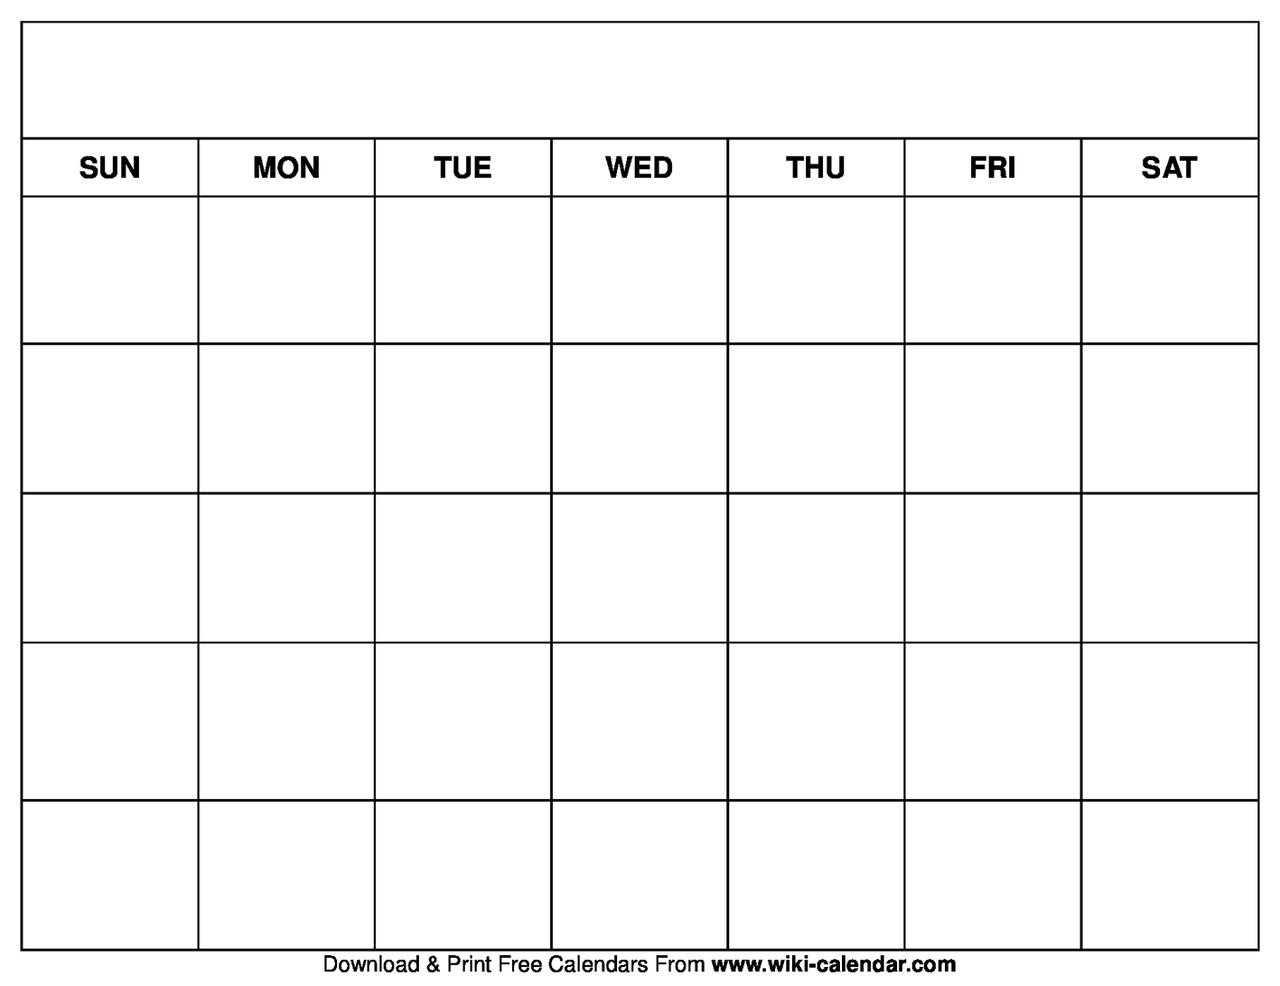 image about Printable Free Calendars titled Printable Blank Calendar Templates upon We Middle It